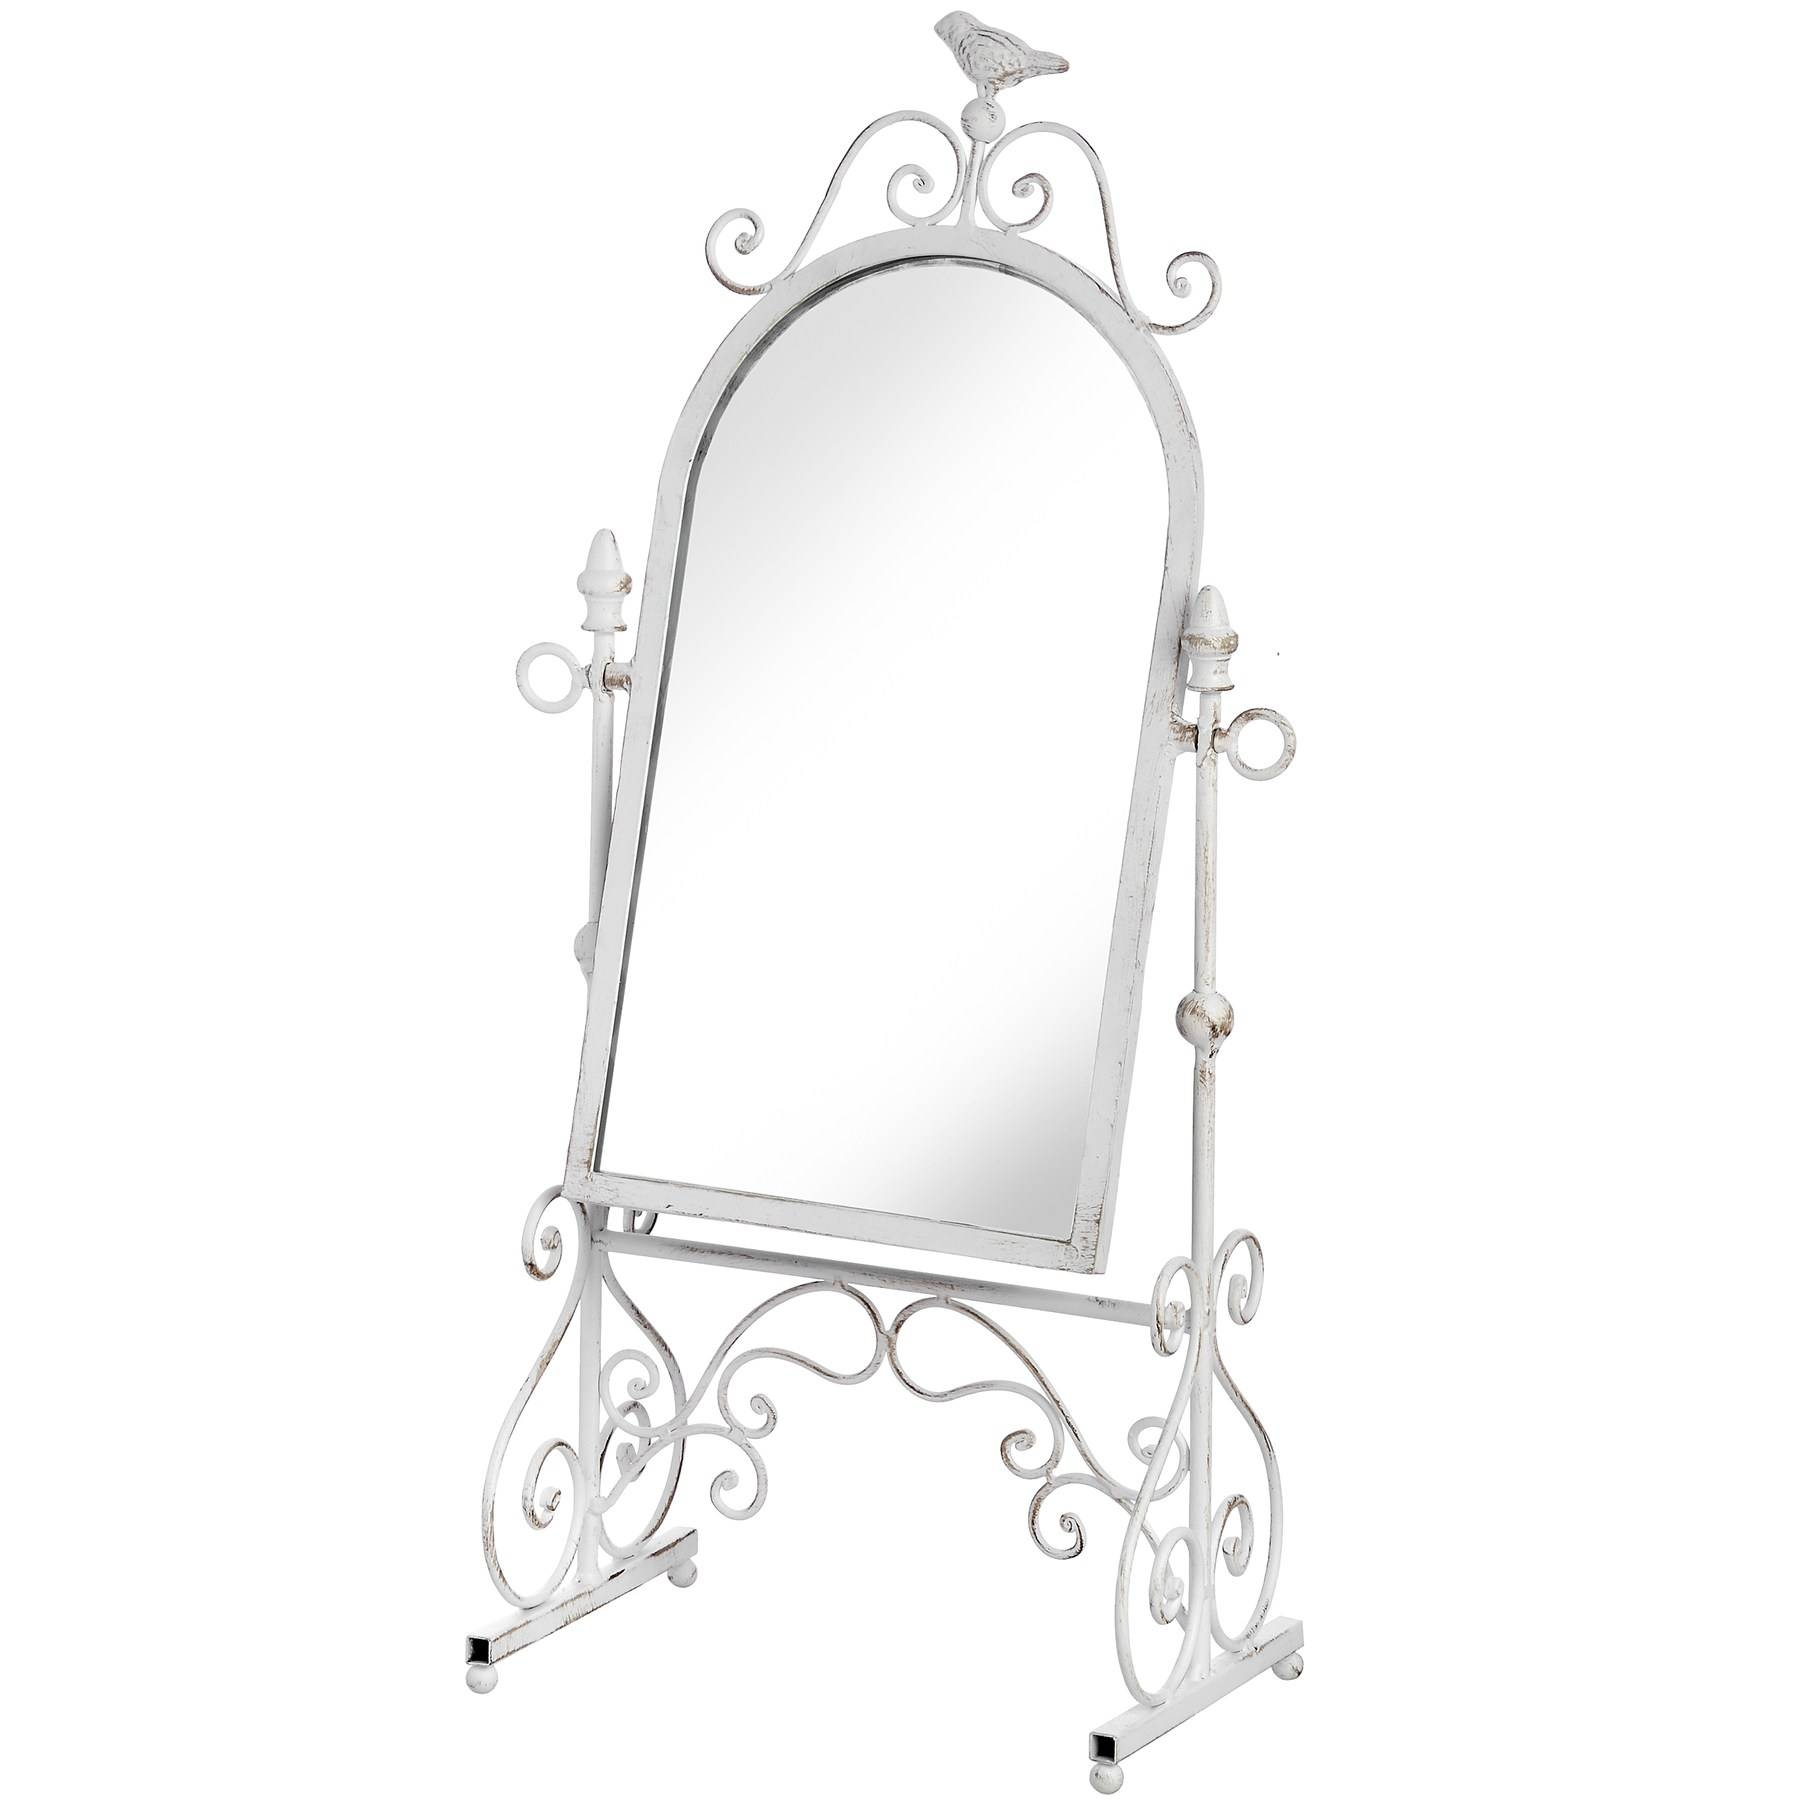 Ornate Floor Standing Mirror From Hill Interiors inside Ornate Dressing Table Mirrors (Image 10 of 15)